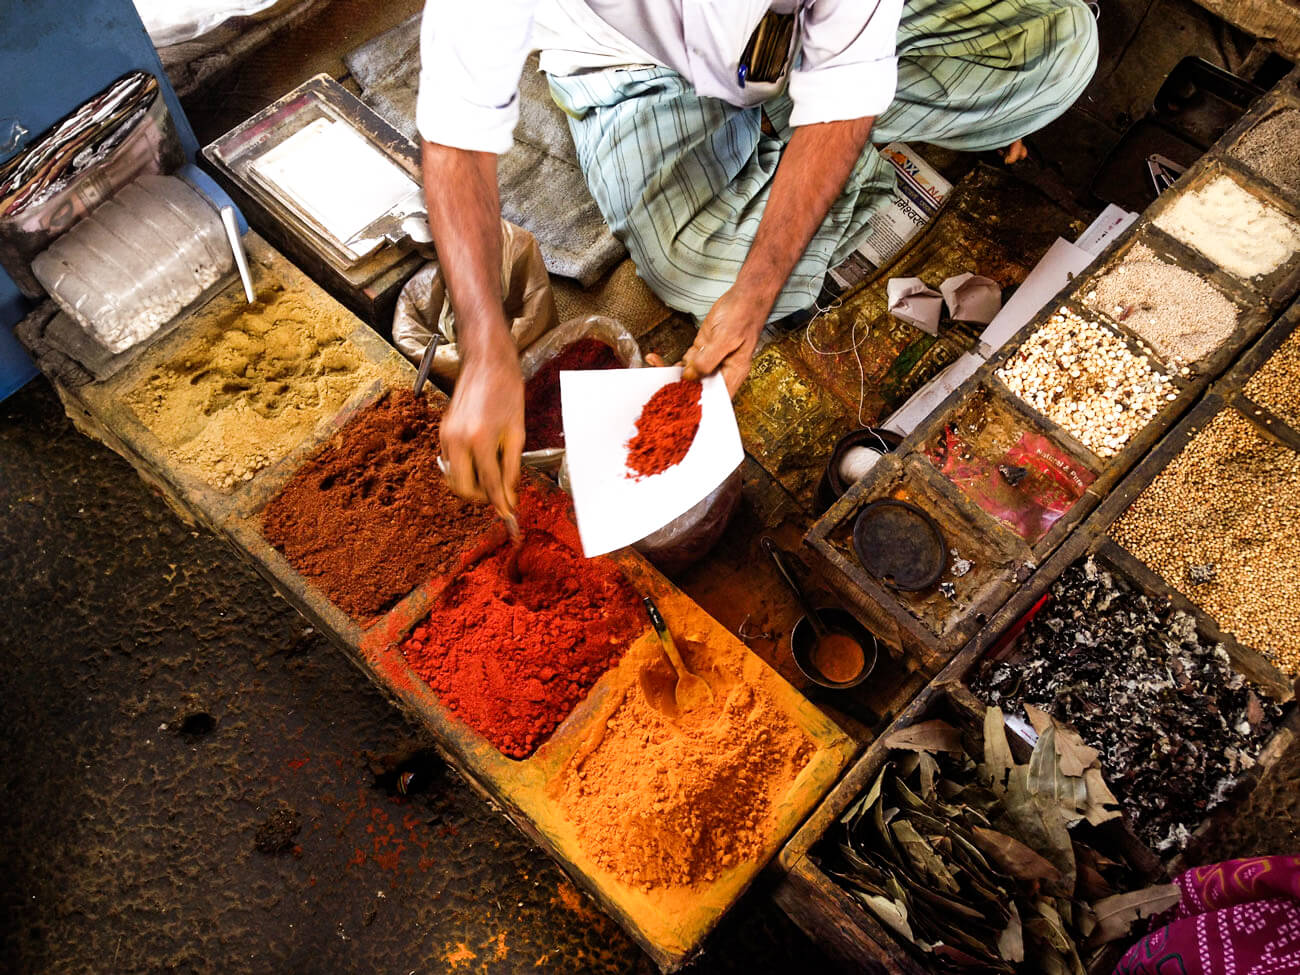 A person collecting a red spice amongst a variety of colorful spices, seasonings and dried herbs.